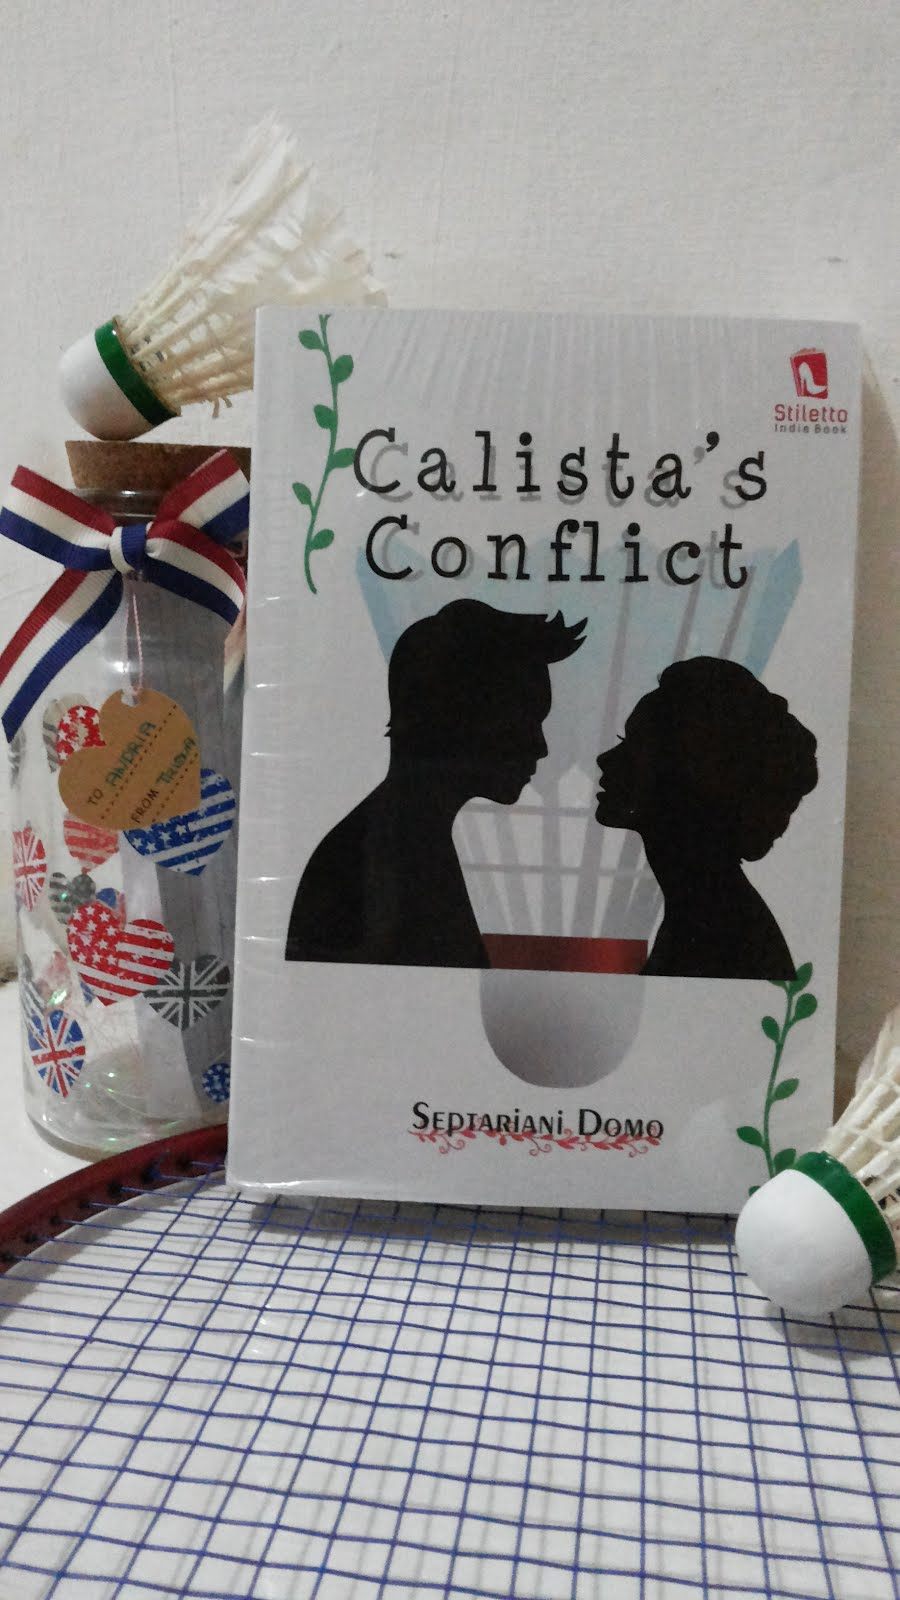 My First Novel ~CALISTA'S CONFLICT by Septariani Domo/Senorita Septy